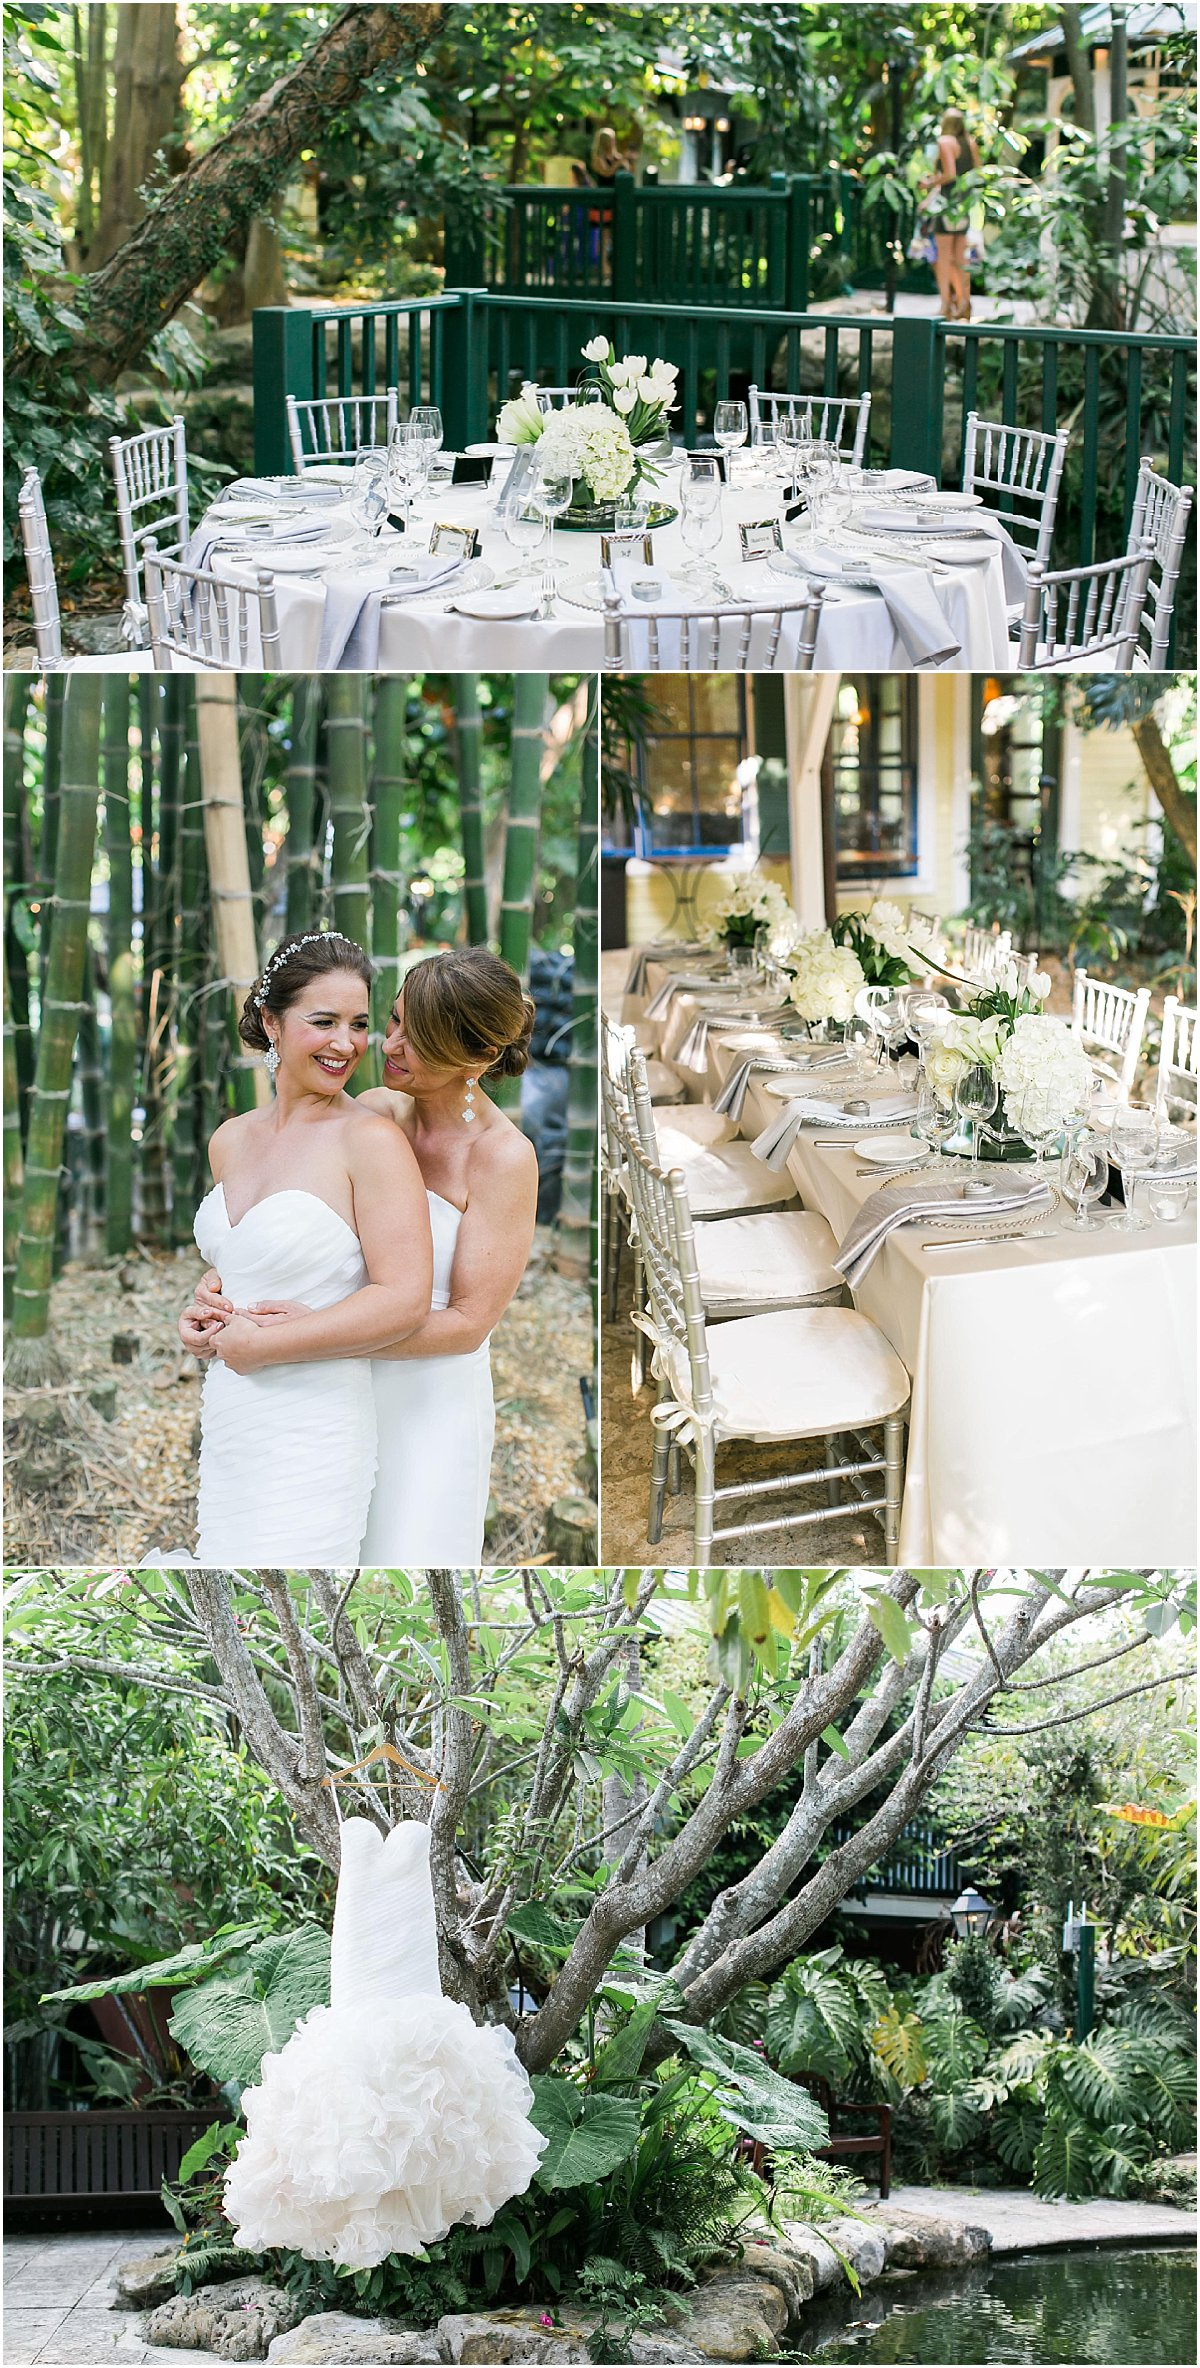 Unique Wedding Venues - Married in Palm Beach